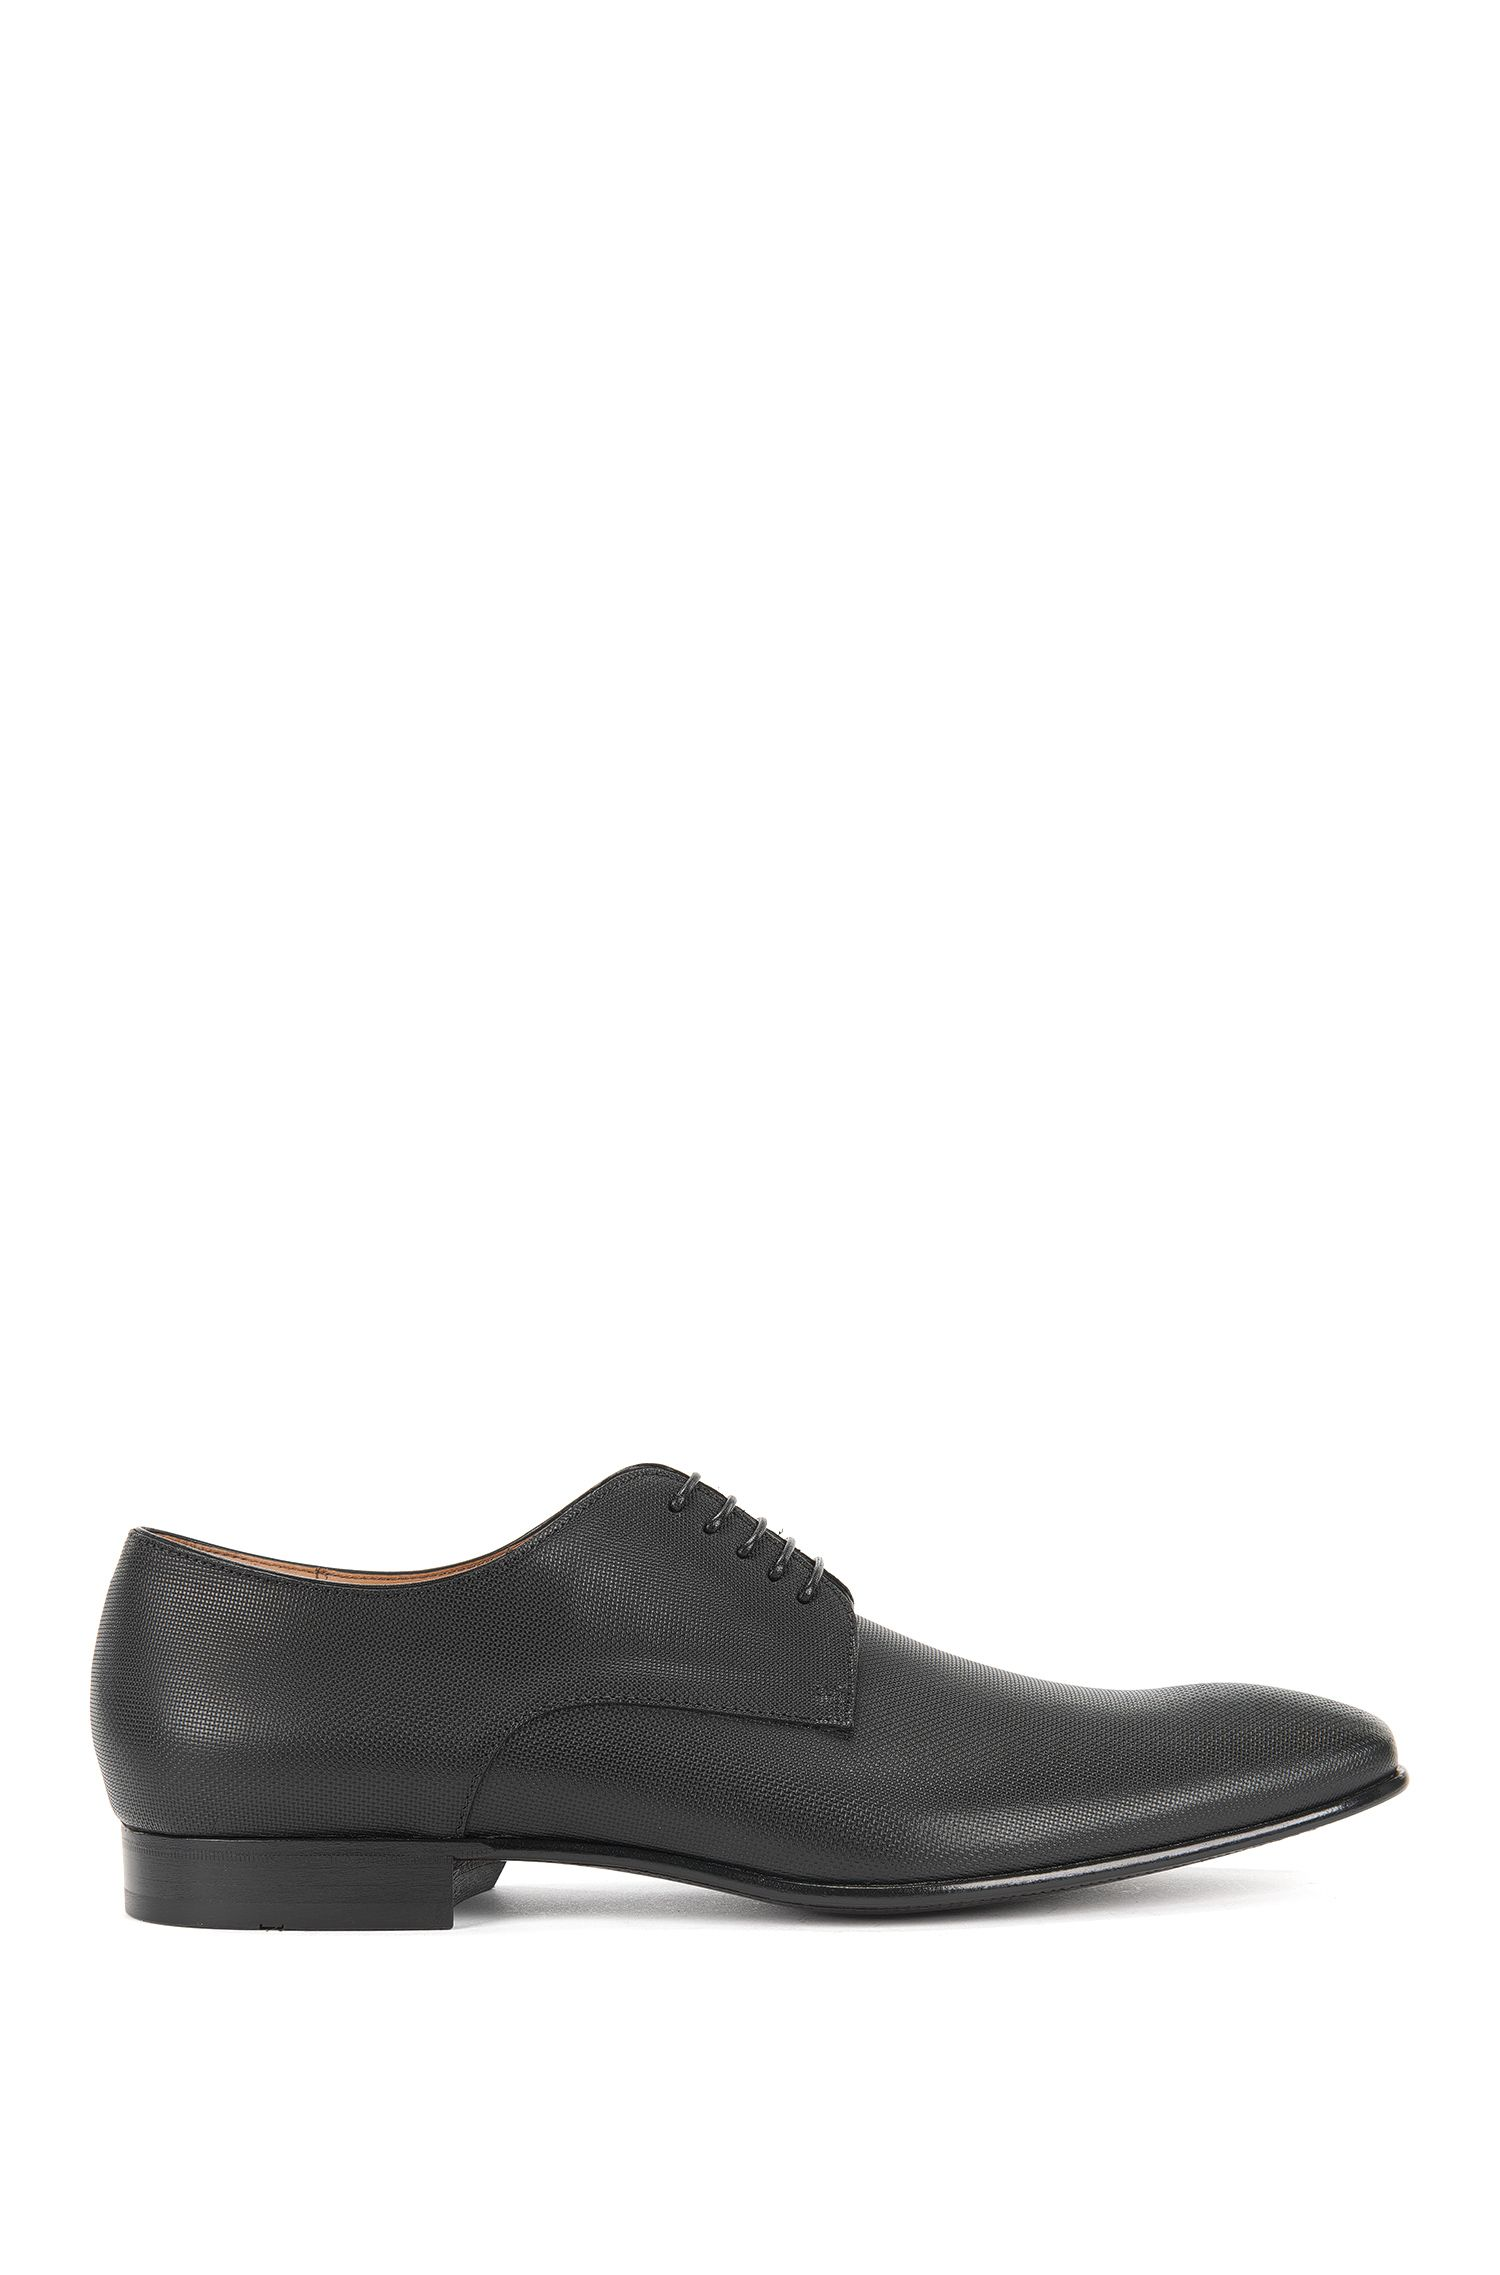 BOSS Hugo Boss Italian Leather Derby Dress Shoe Prindo 11.5 Black